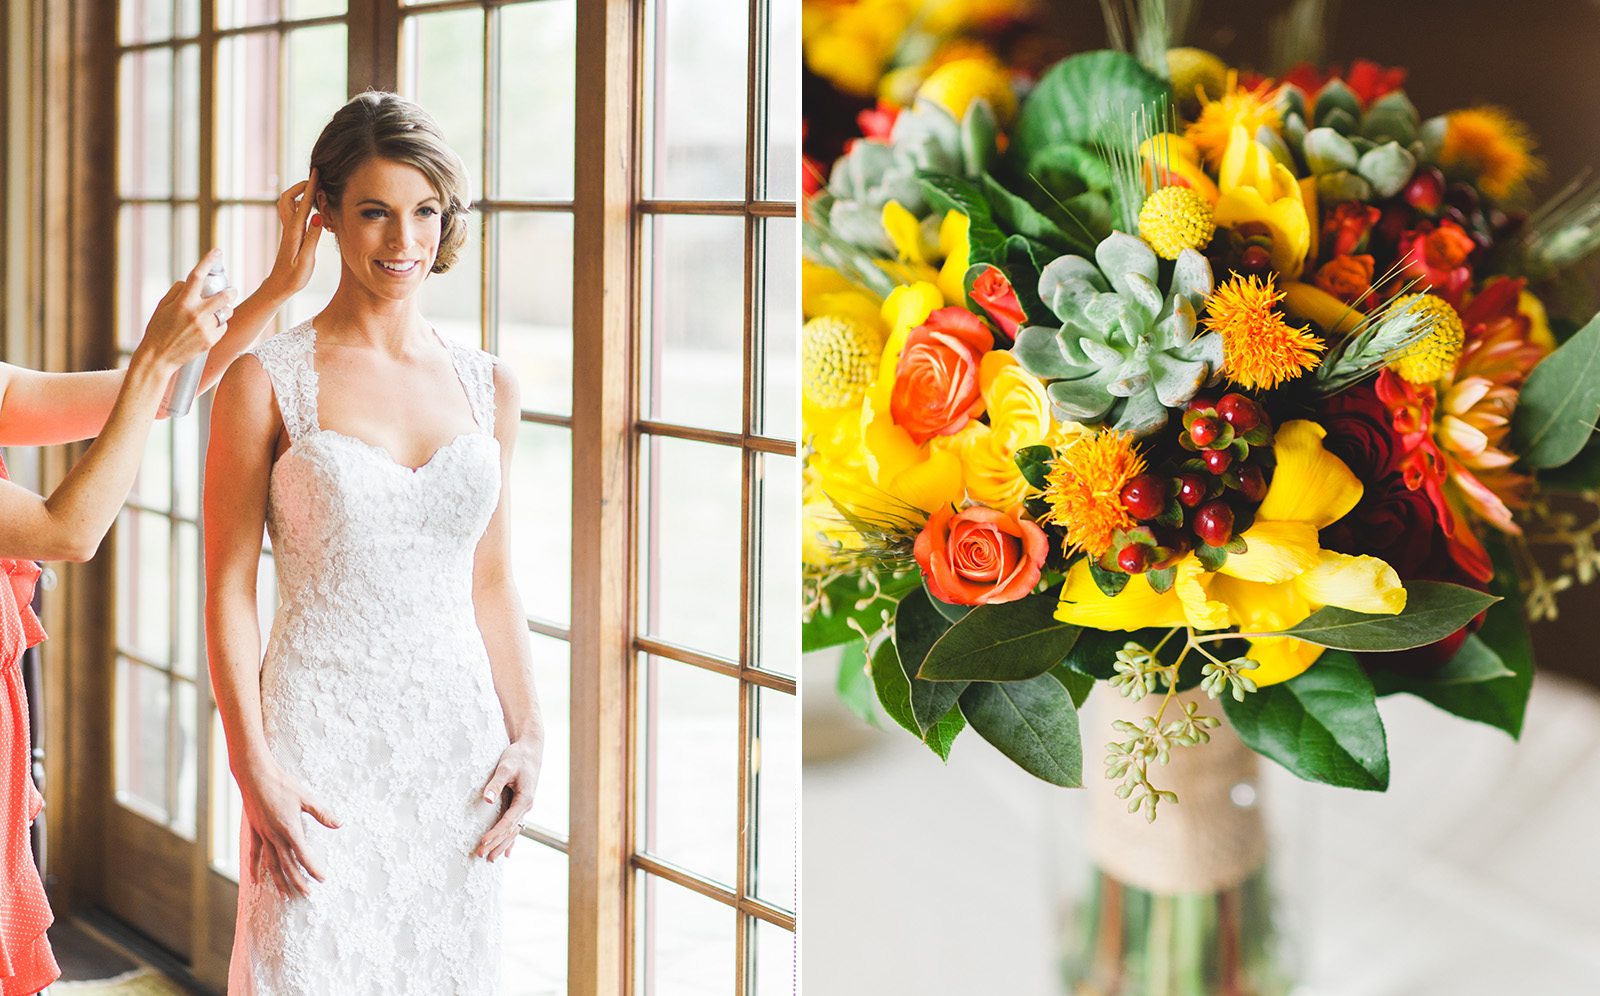 Colorado bride with flowers wedding